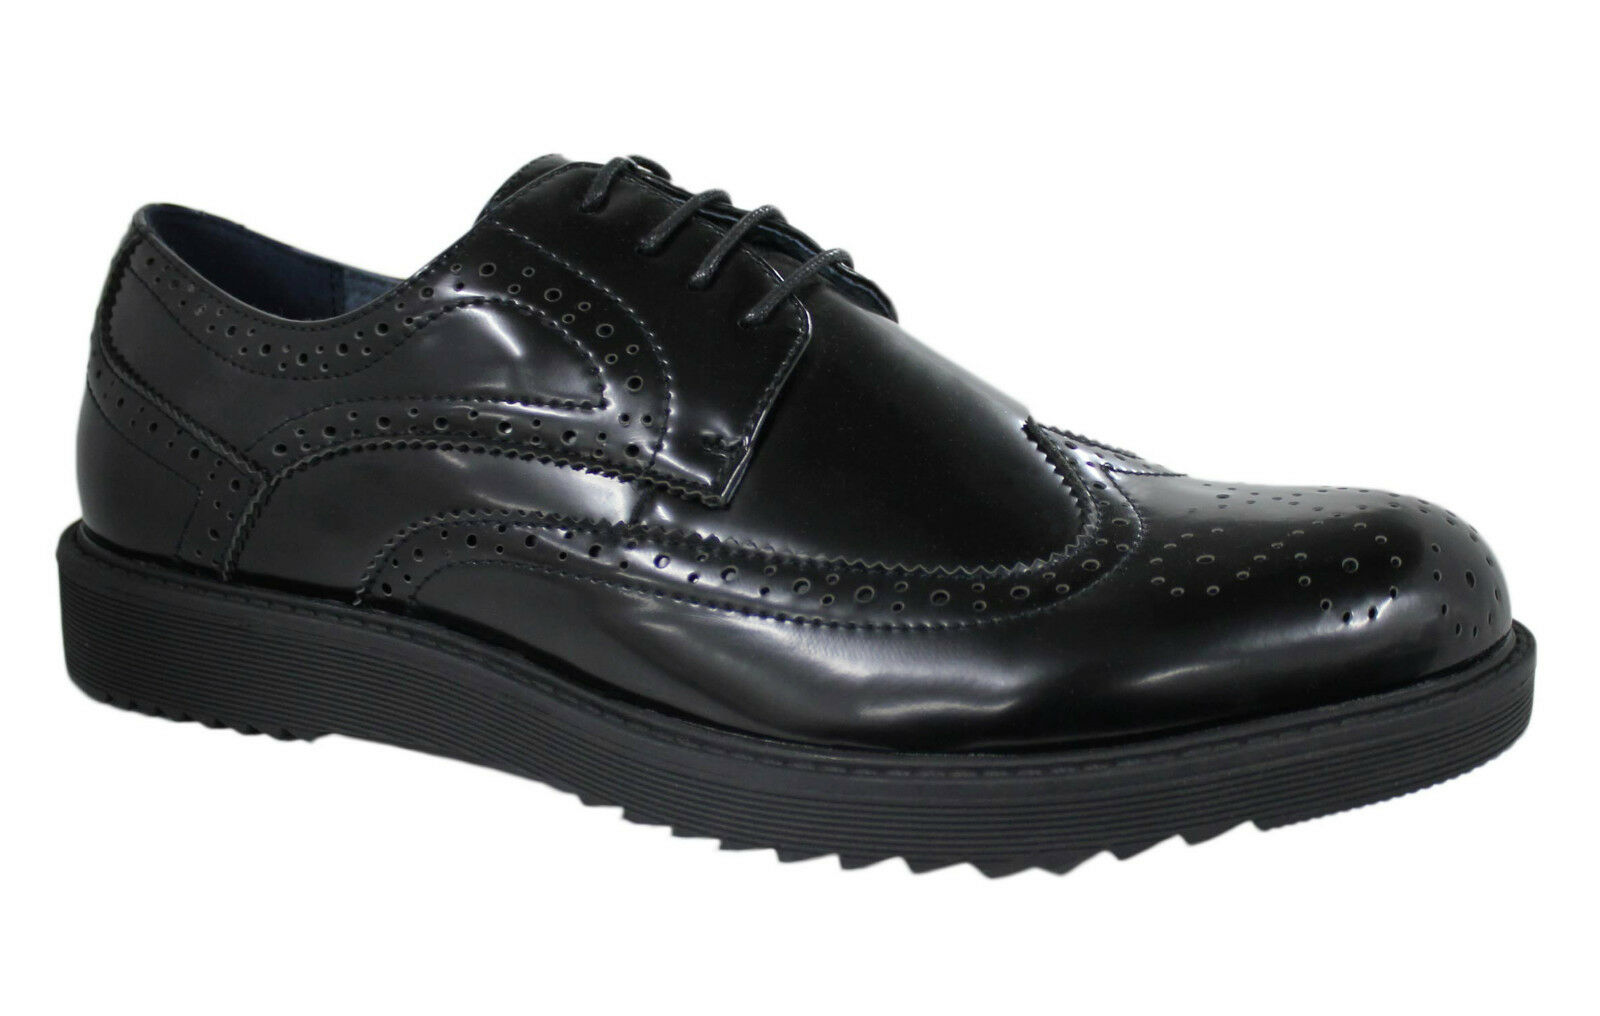 SHOES OXFORD MAN DIAMOND CLASS ELEGANT 40 BLACK ECO LEATHER da 40 ELEGANT a 45 d300a1